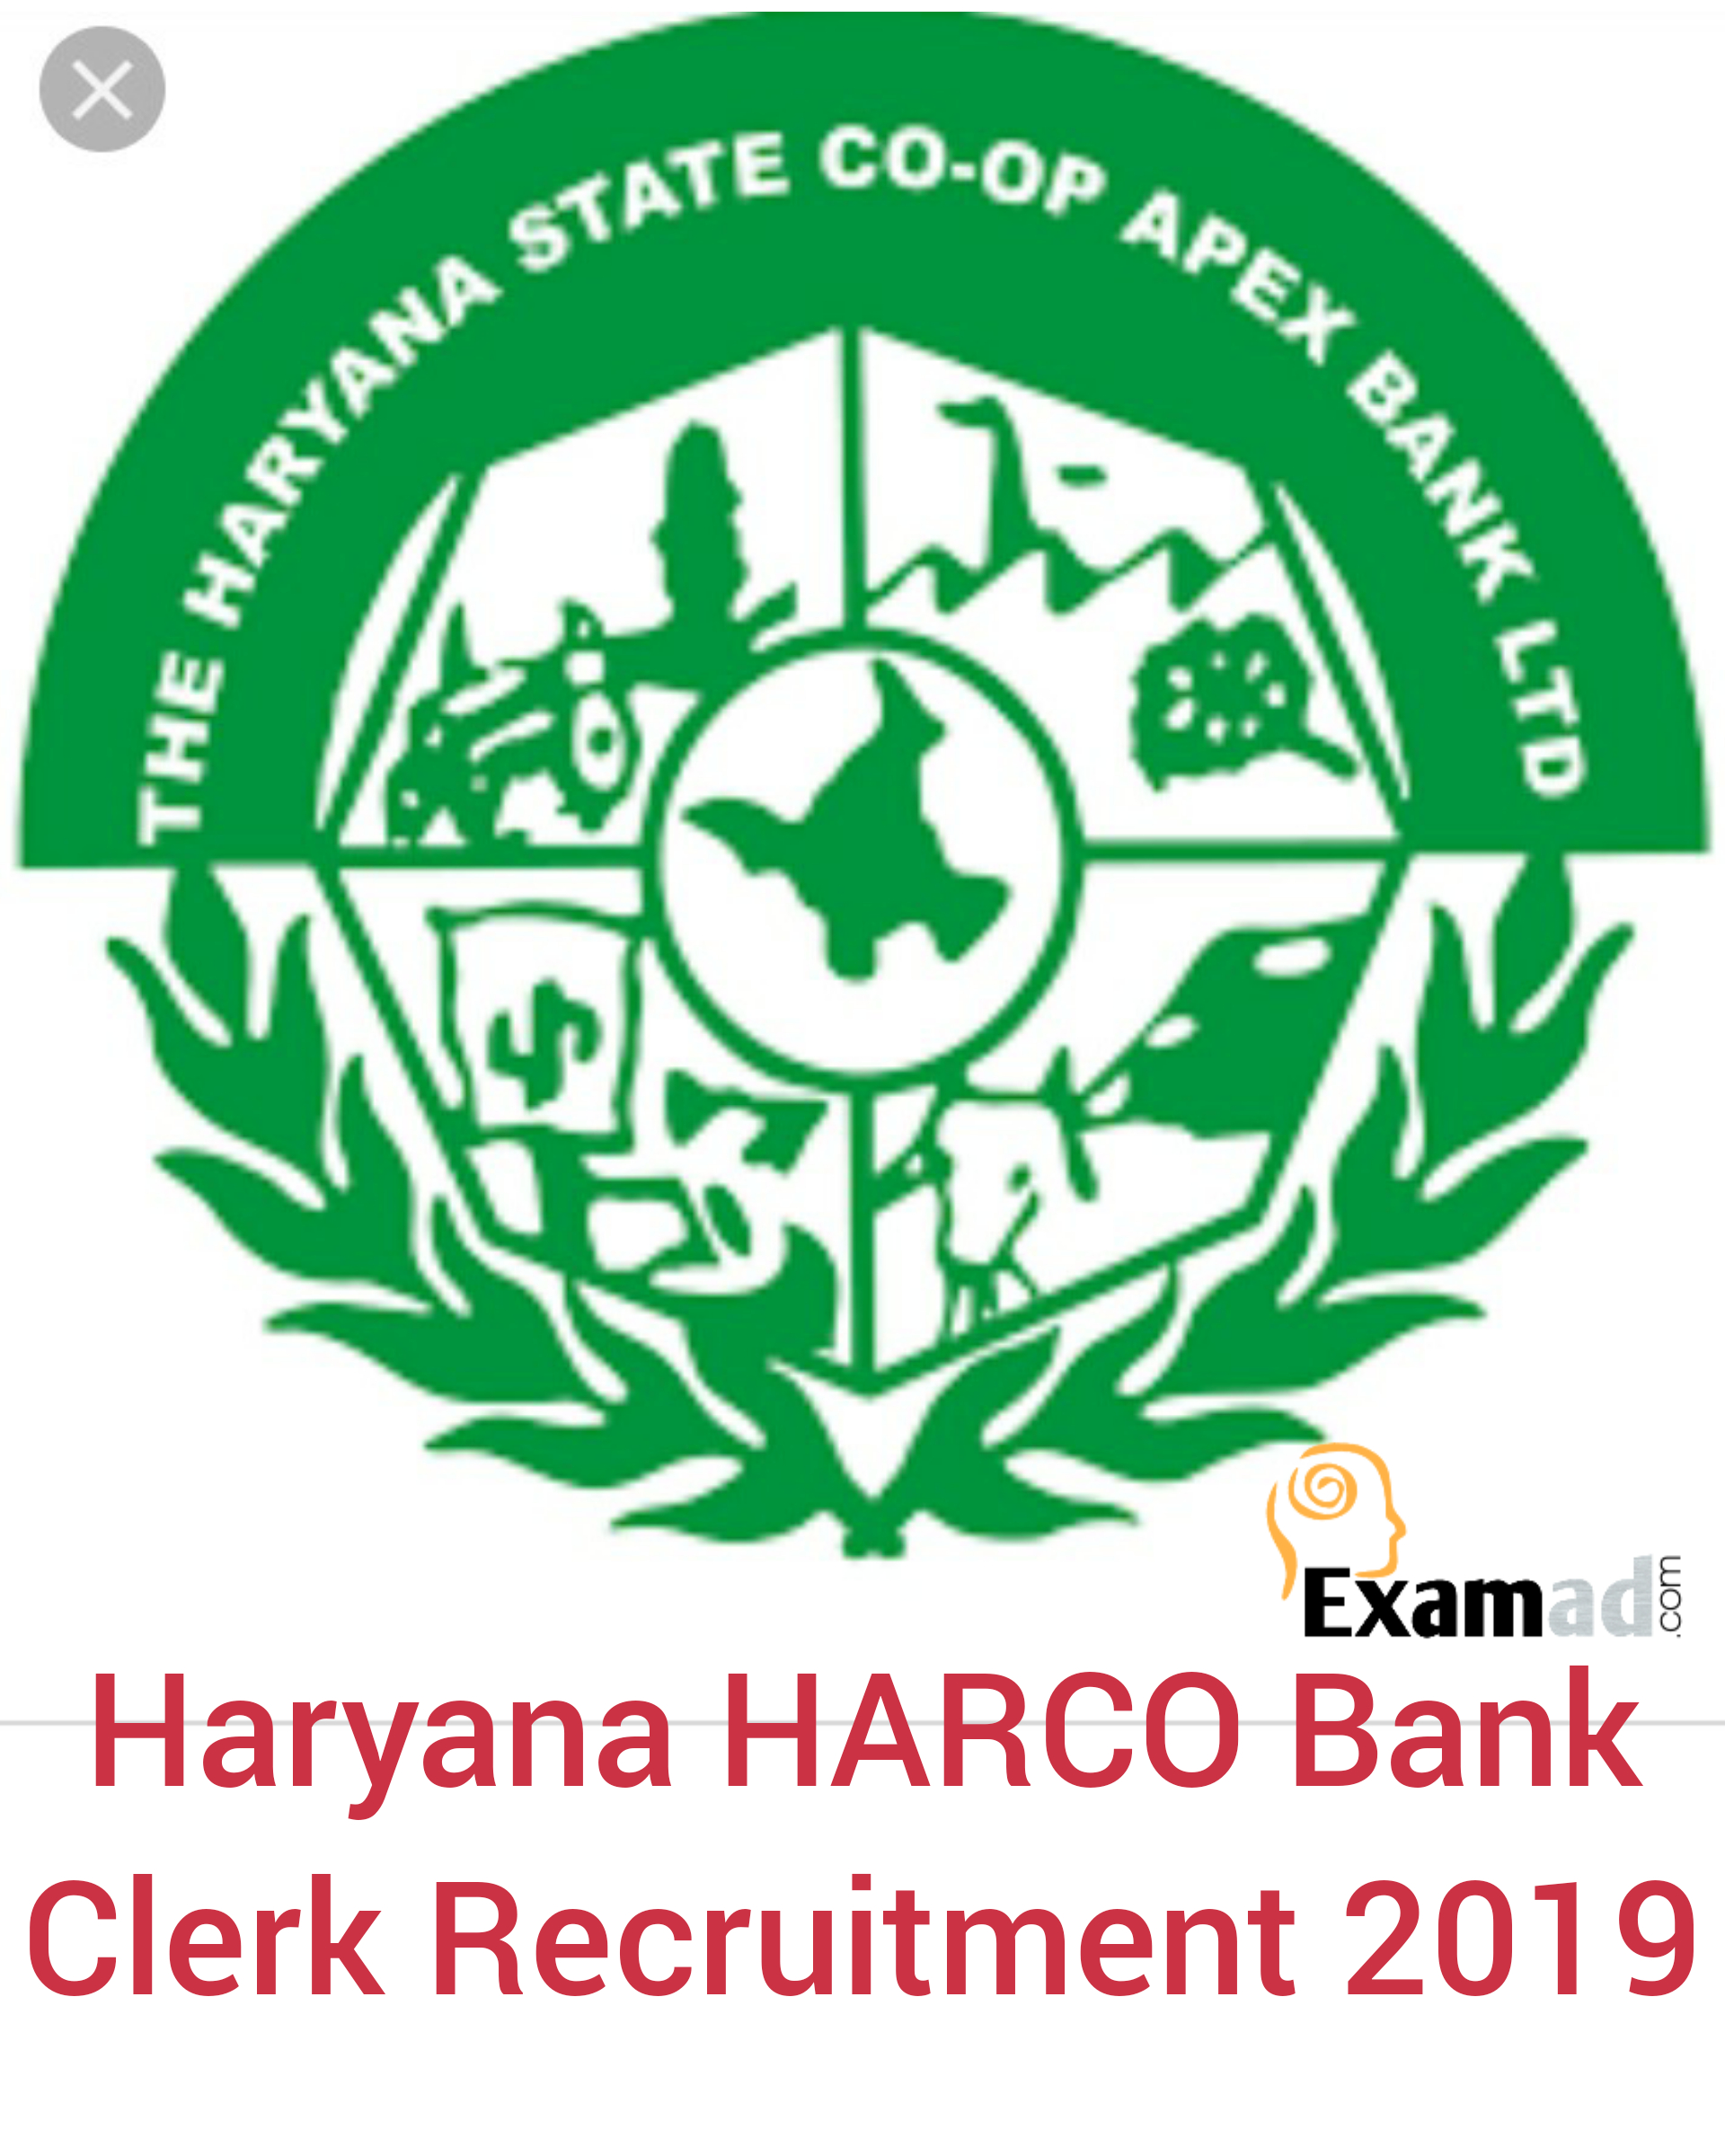 Haryana HARCO Bank Clerk Syllabus and Exam Pattern 2019